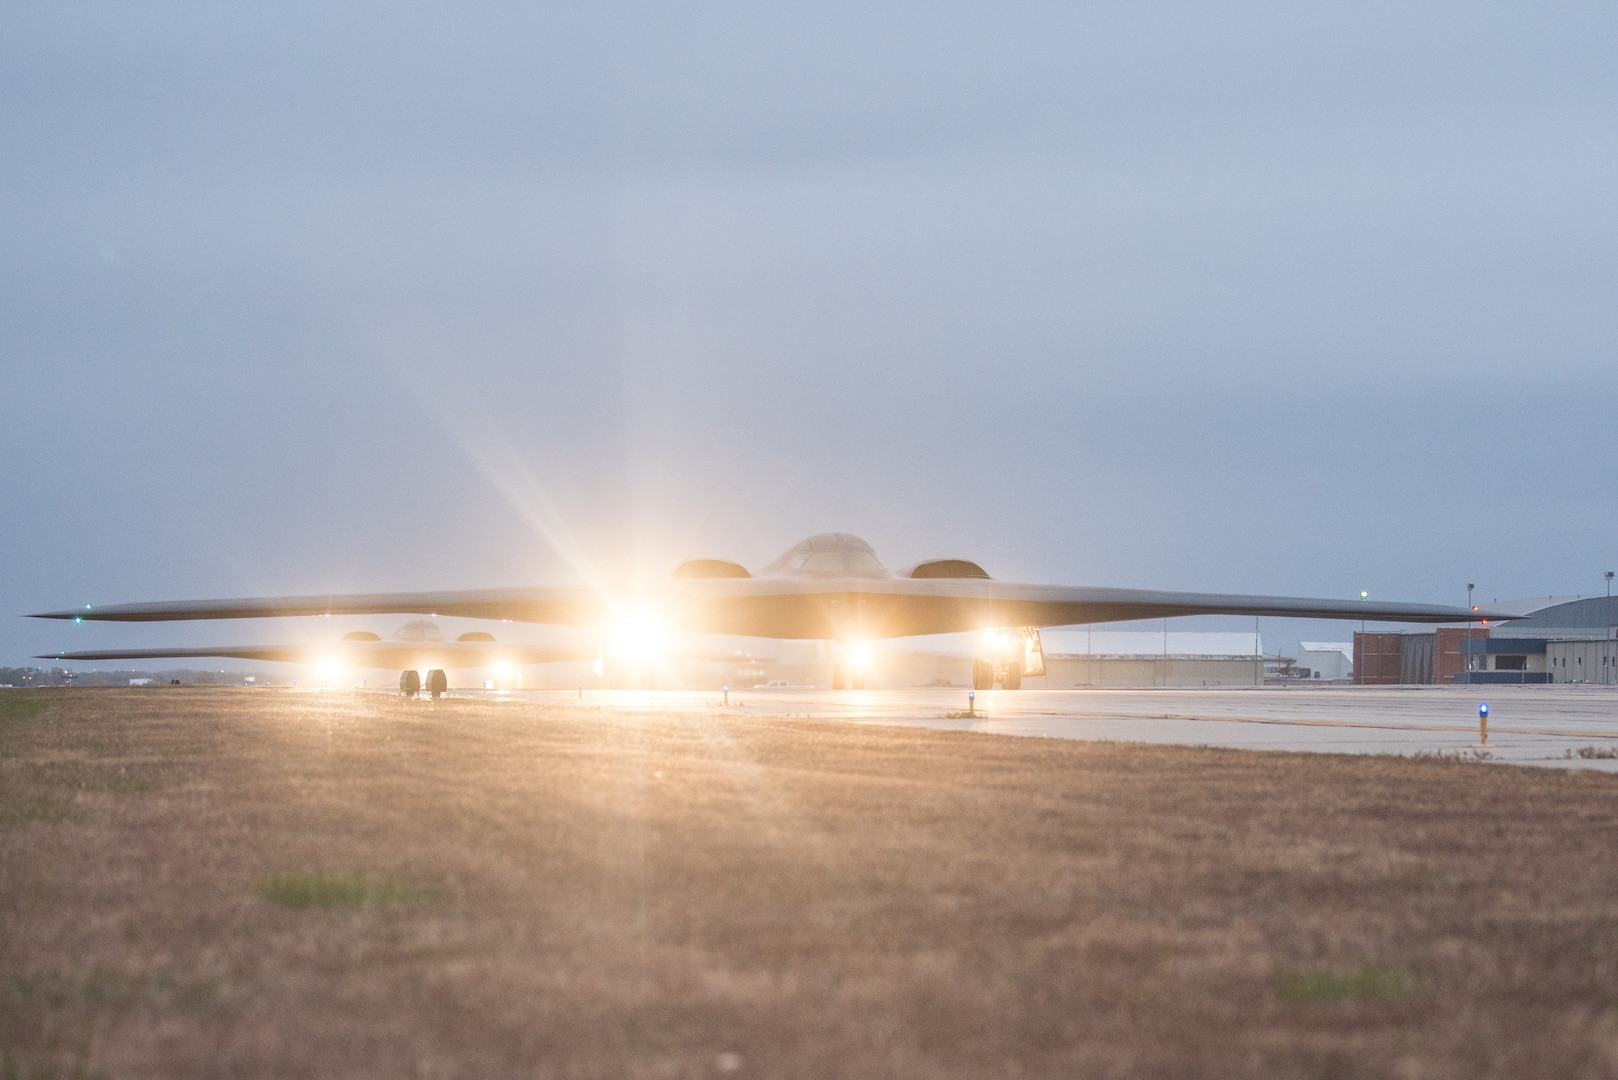 B-2 Spirit Bombers depart for a Bomber Task Force (BTF)mission, October 27, 2019. This BTF mission is part of Global Thunder 20, U.S.Strategic Command's annual nuclear command and control and field training exercise that enhances readiness.